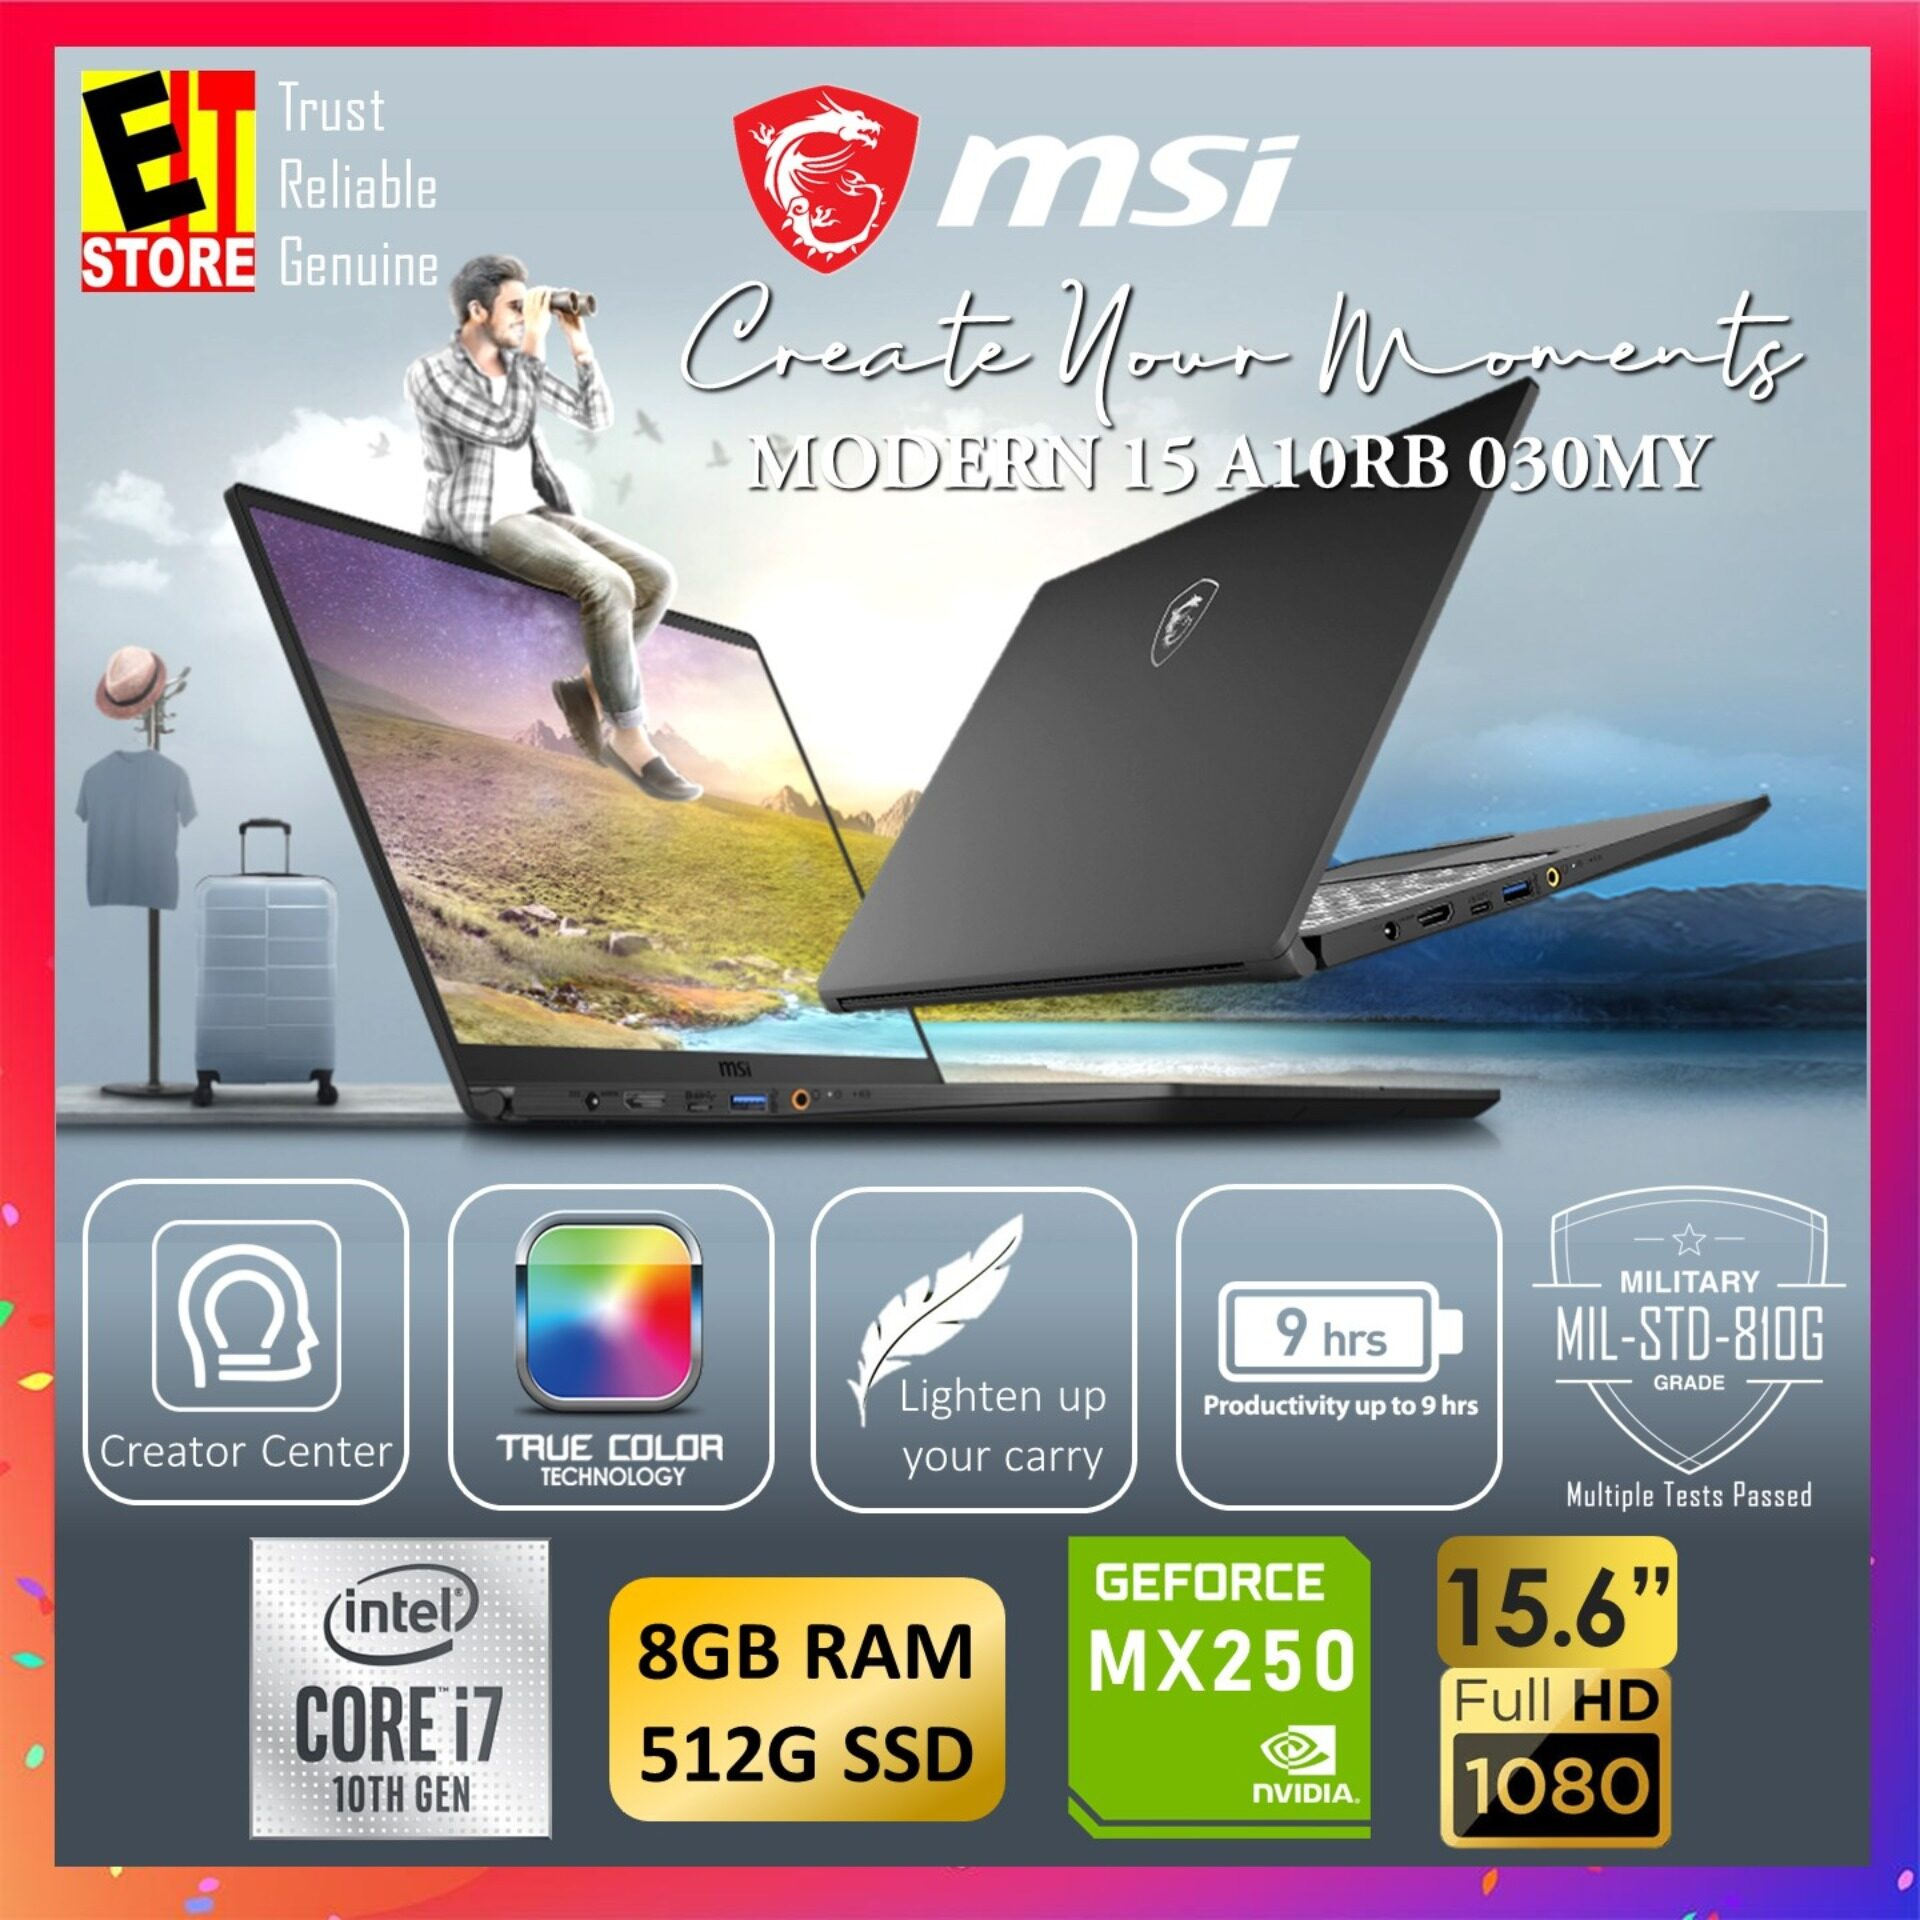 MSI MODERN 15 A10RB 030MY CREATION LAPTOP -ONYX BLACK (I7-10510U/8GB/512GB SSD/15.6 FHD/MX250 2GB/W10/1YR INTERNATIONAL) Malaysia